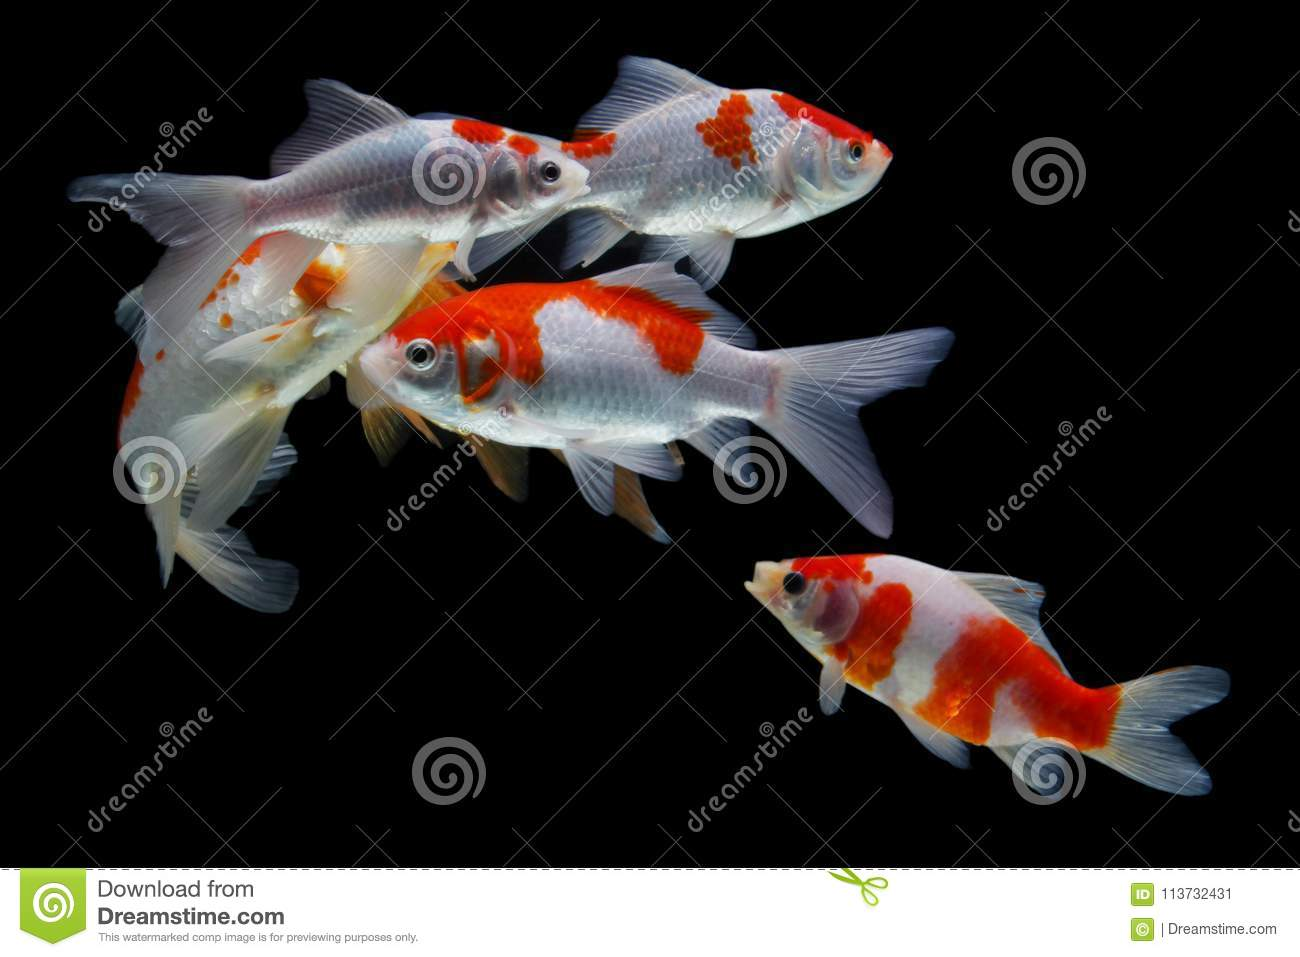 Koifish-colordiversity Asiat